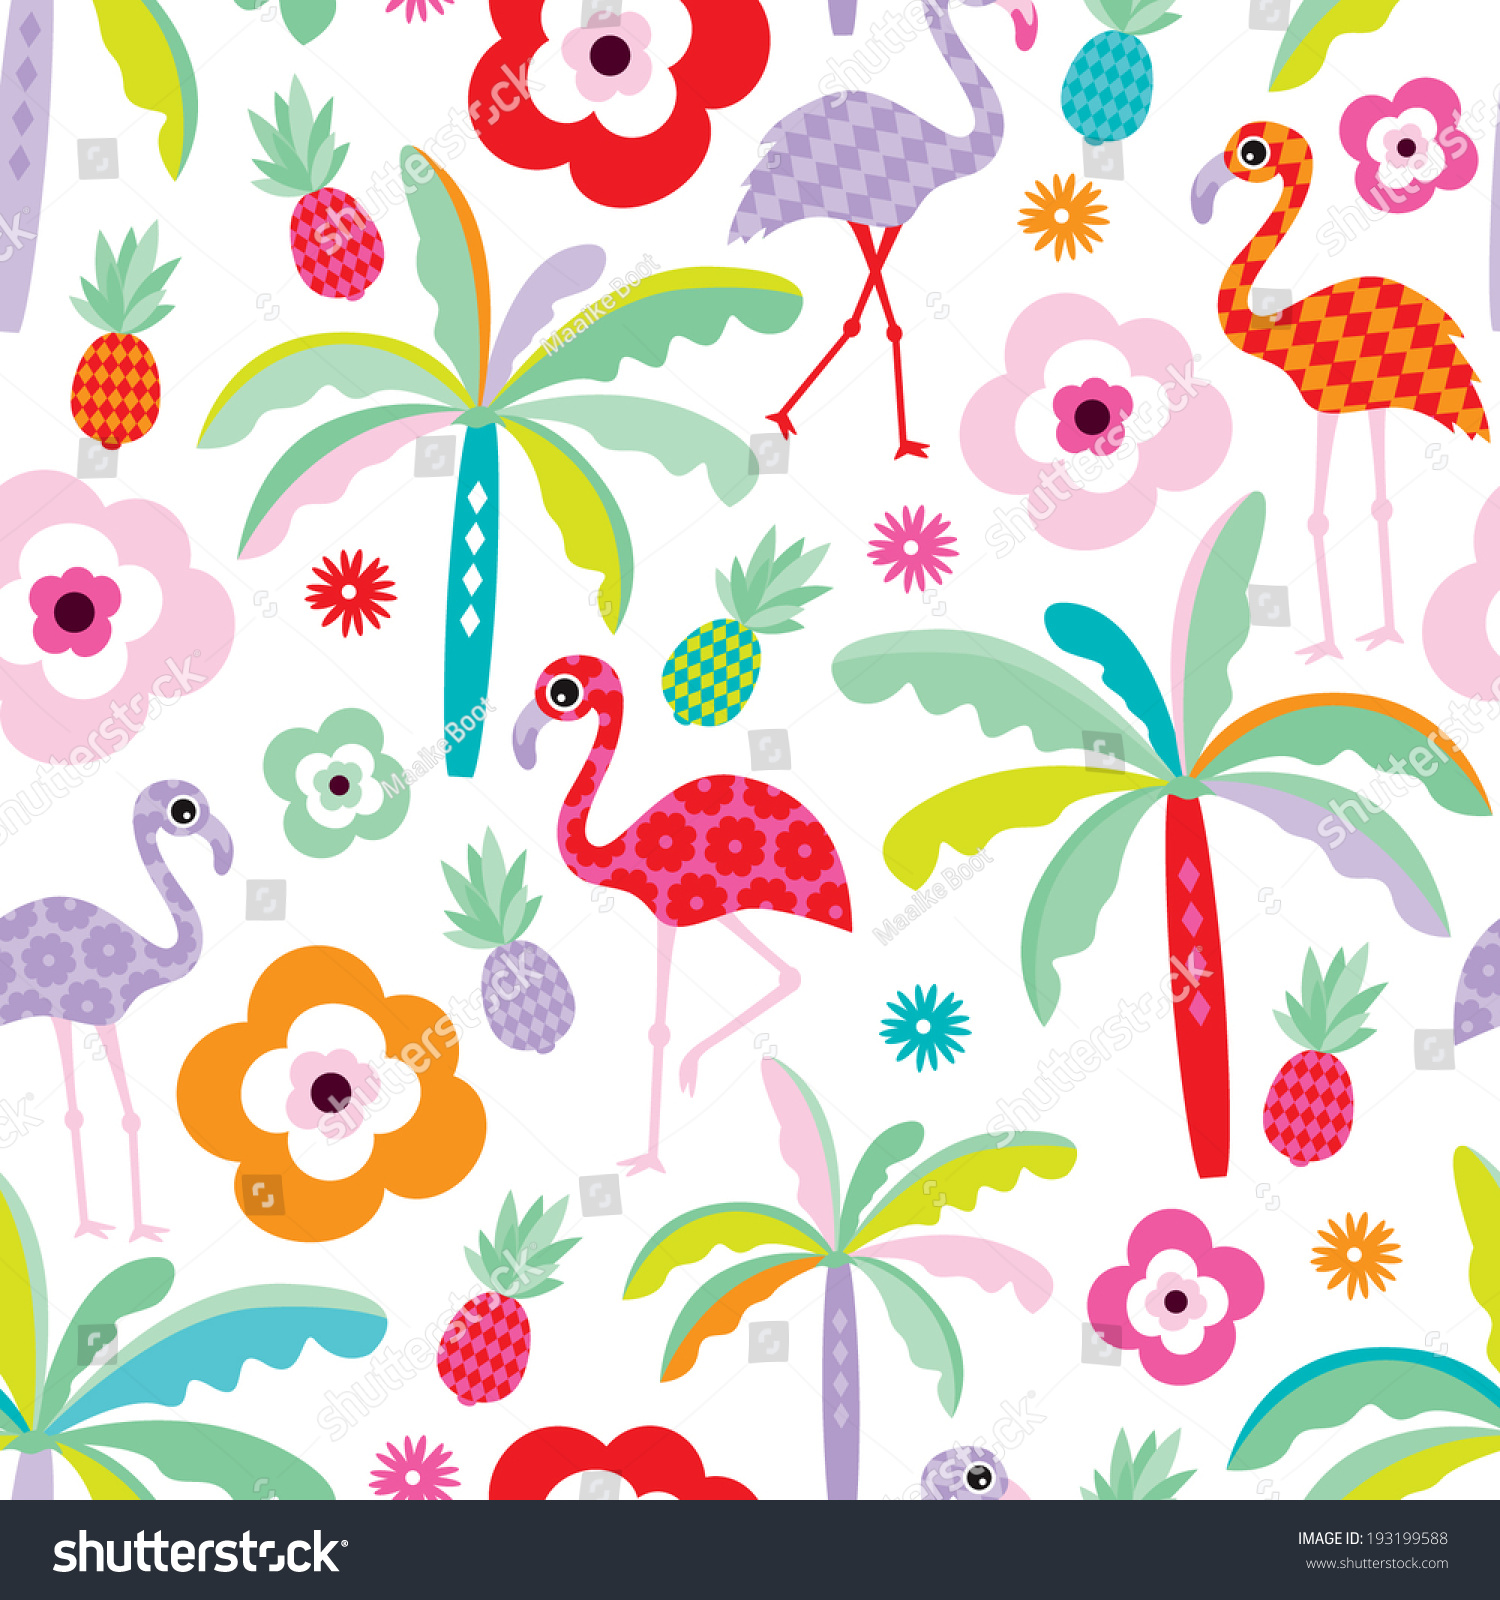 Seamless Tropical Flamingo Palm Tree Beach Stock Vector 193199588 Shutterstock